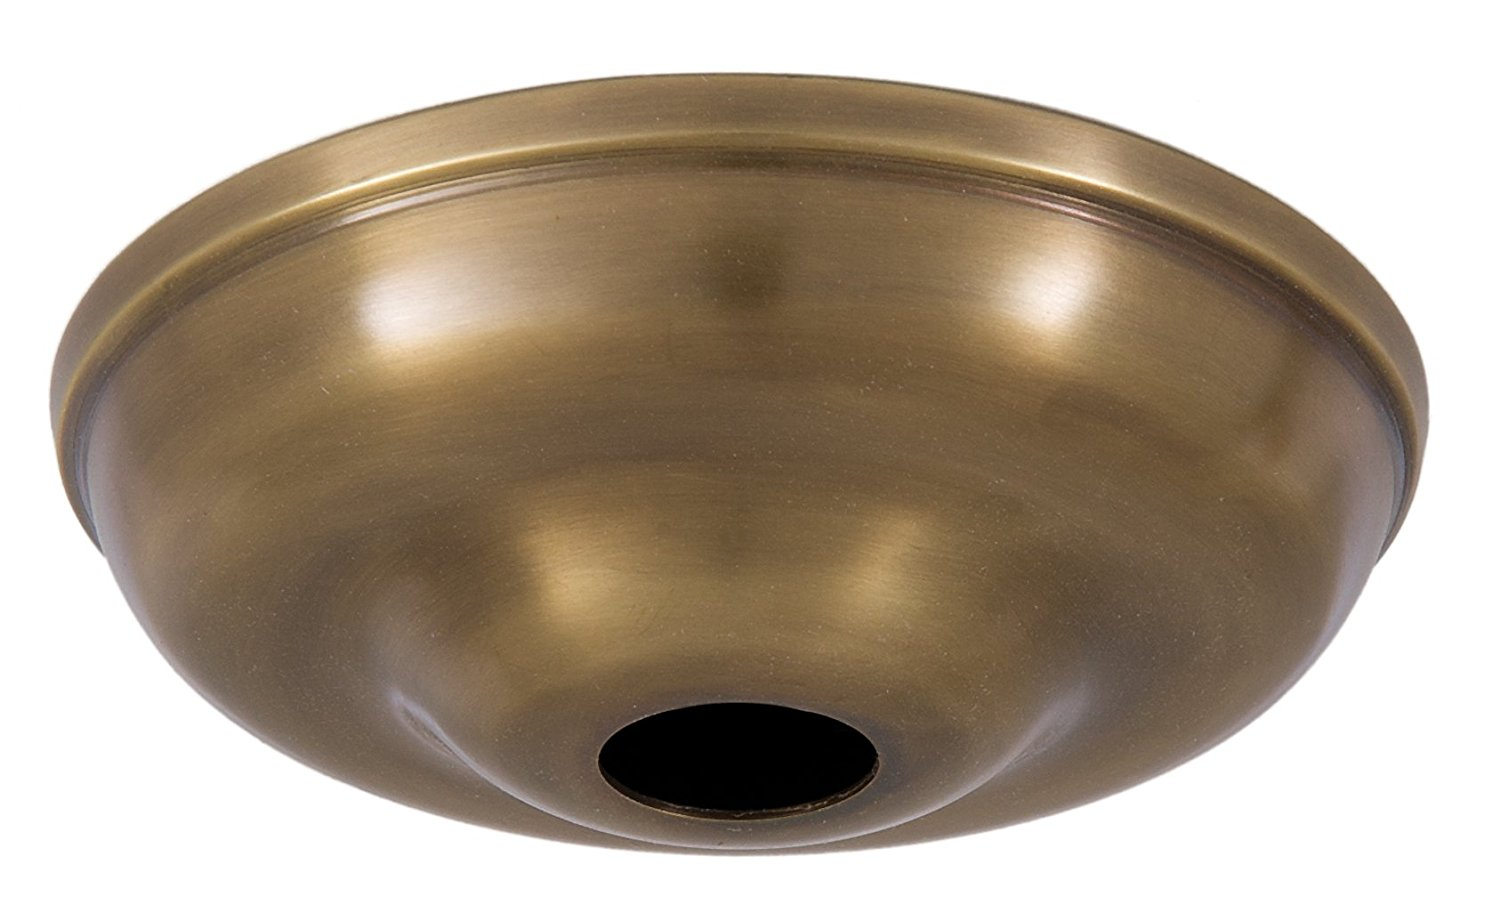 5 1 2 Inch Antique Brass Round Canopy (Only), 5 1 2 Inch Antique Brass Round Canopy (only) By B&P Lamp by